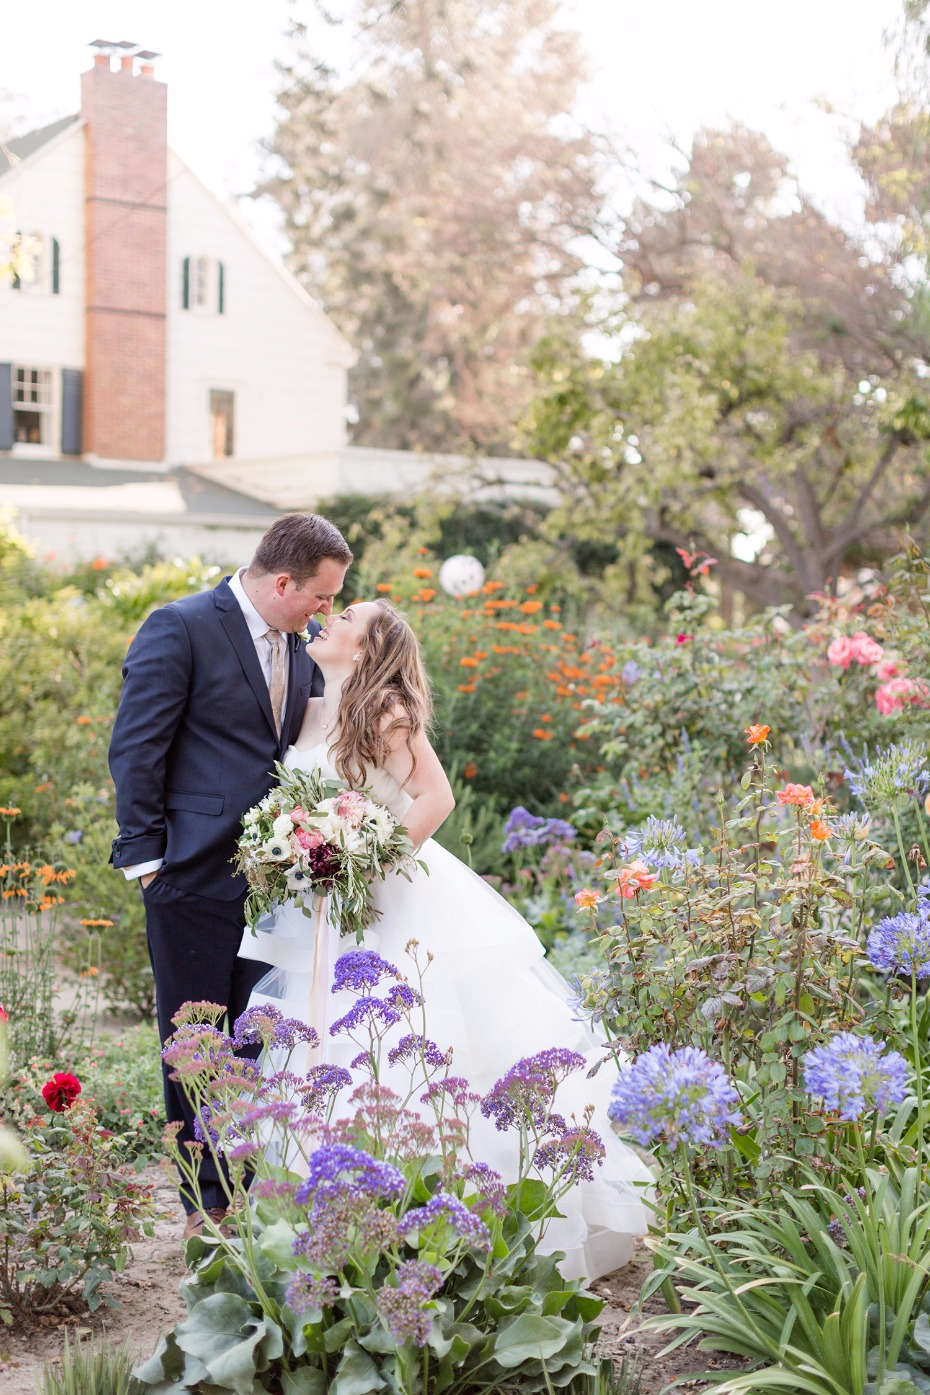 Gorgeous garden wedding venue